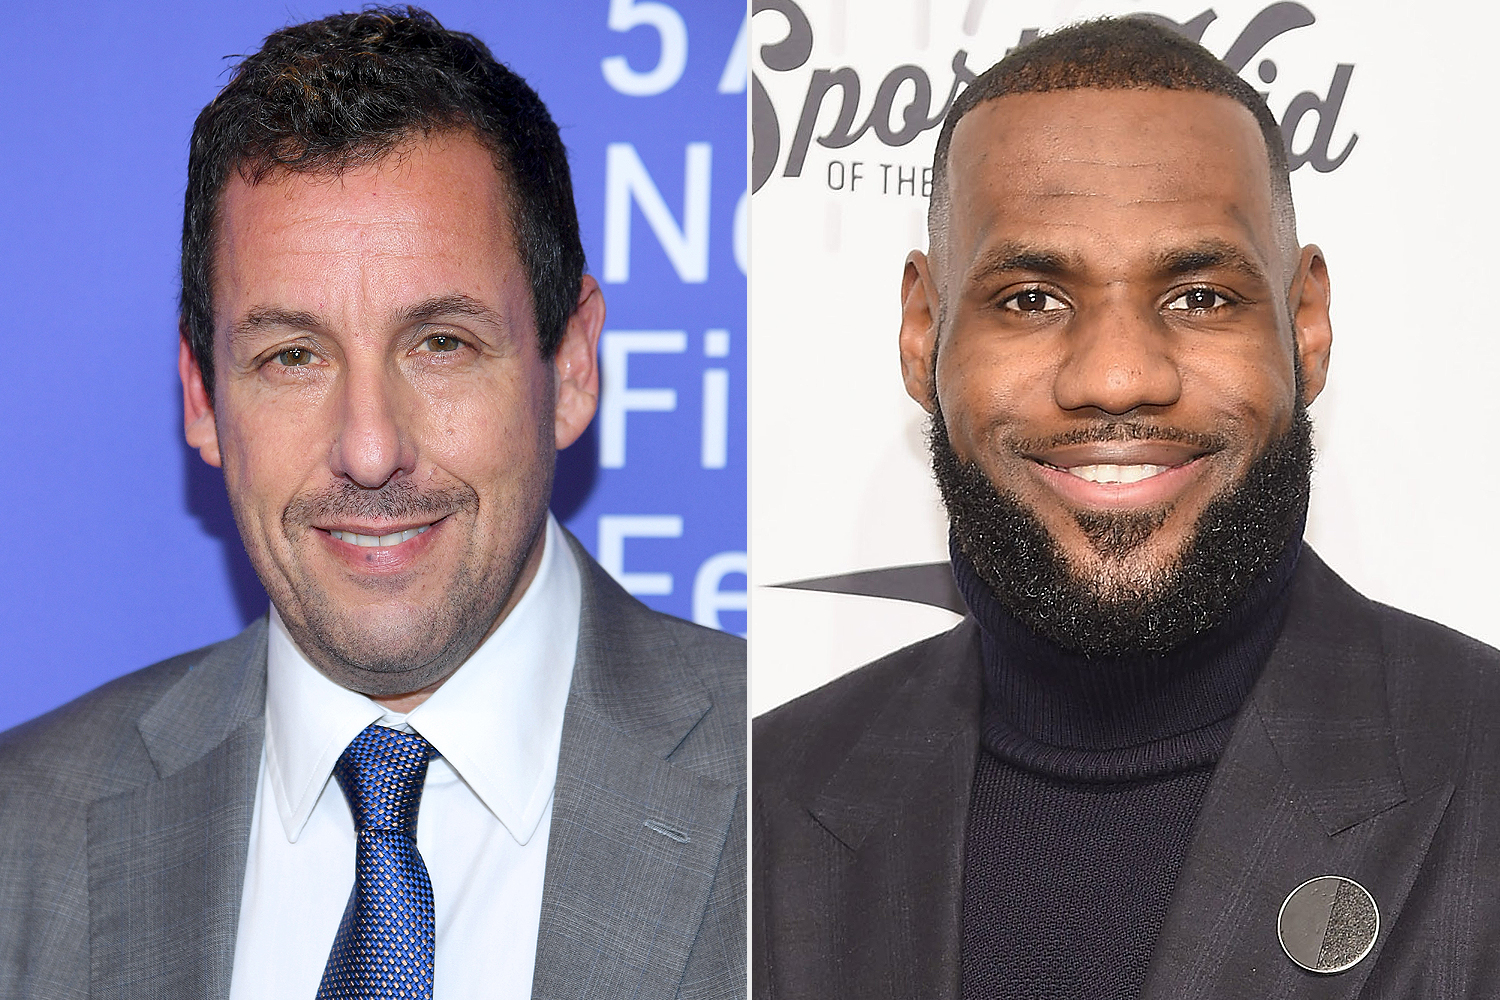 Adam Sandler, Lebron James